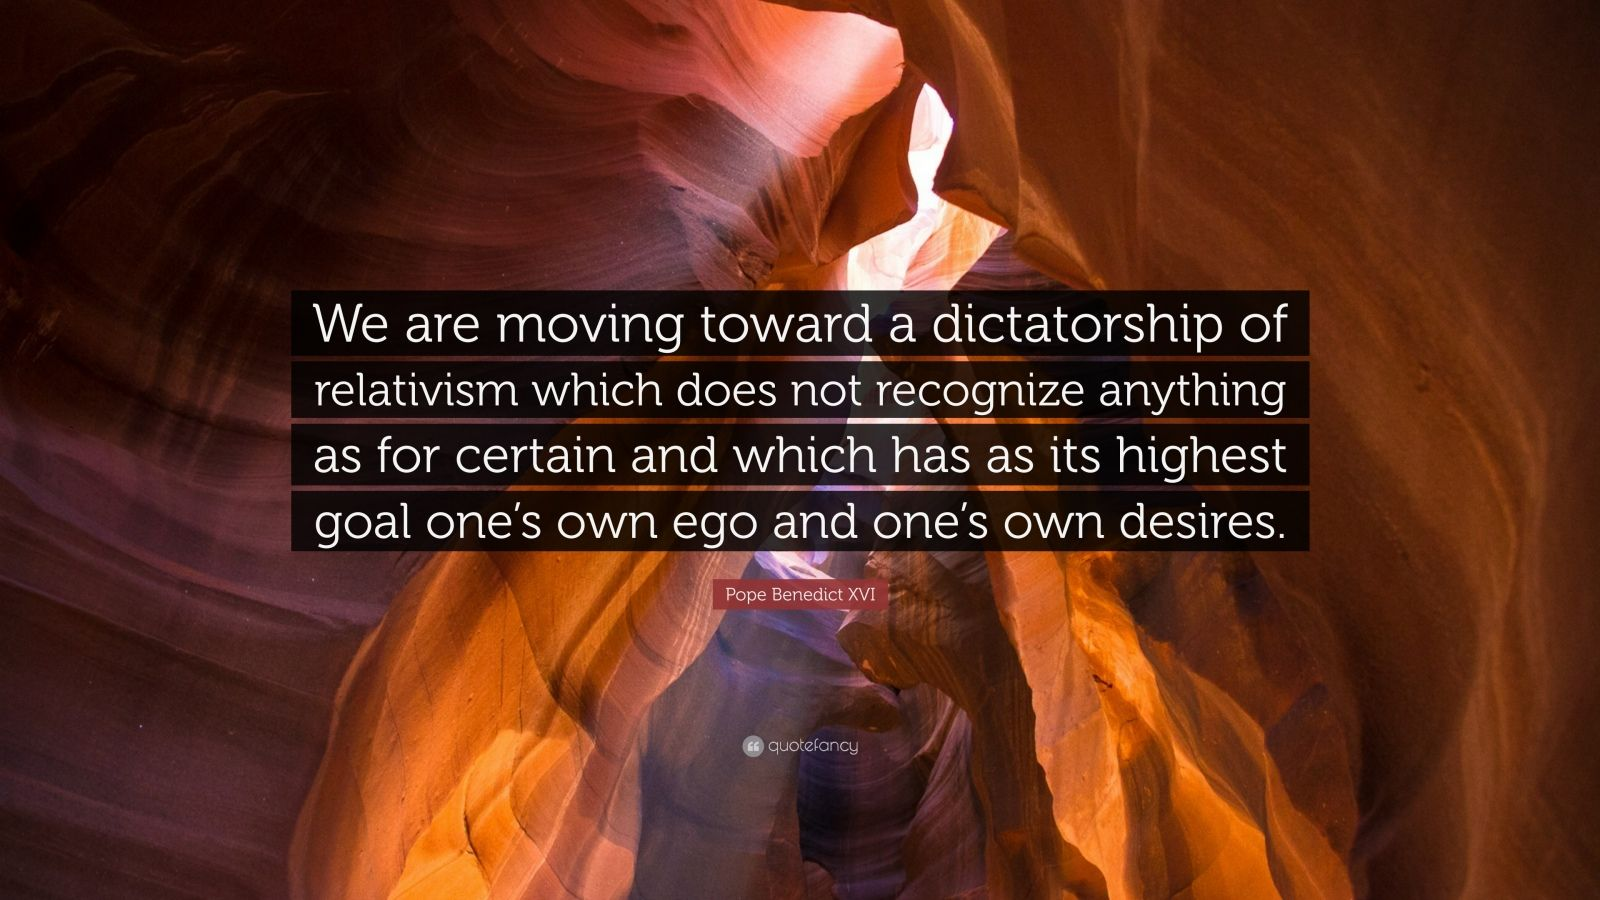 """Pope Benedict XVI Quote: """"We are moving toward a dictatorship of relativism which does not recognize anything as for certain and which has as its highest goal one's own ego and one's own desires."""""""